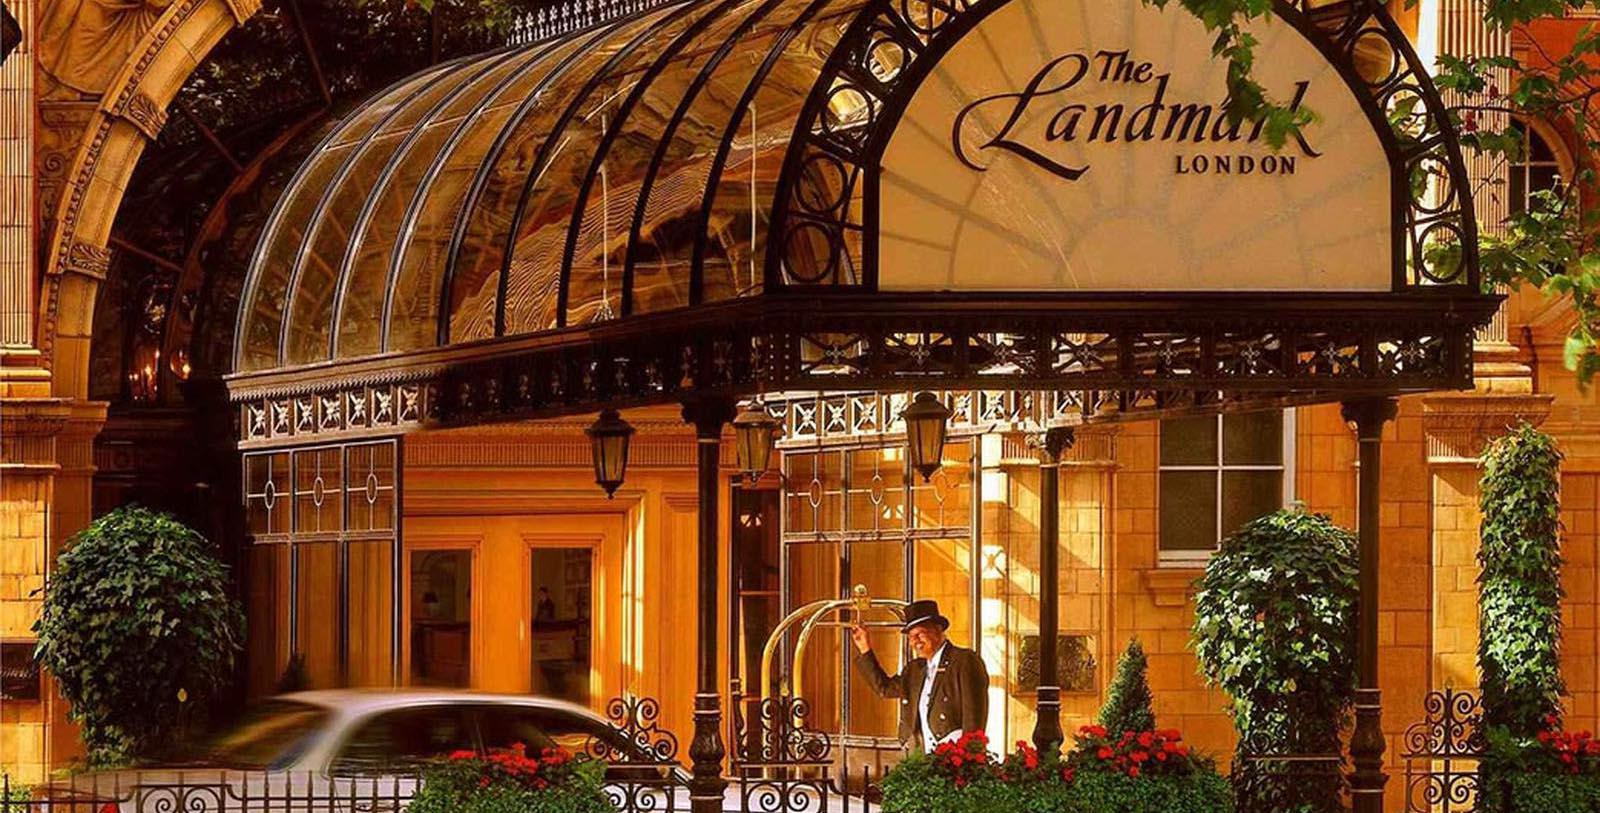 Image of Hotel Front Entrance at The Landmark London, 1899, Member of Historic Hotels Worldwide, in London, England, United Kingdom, OverviewImage of Hotel Exterior The Landmark London, 1899, Member of Historic Hotels Worldwide, in London, England, United Kingdom, Special Offers, Discounted Rates, Families, Romantic Escape, Honeymoons, Anniversaries, Reunions